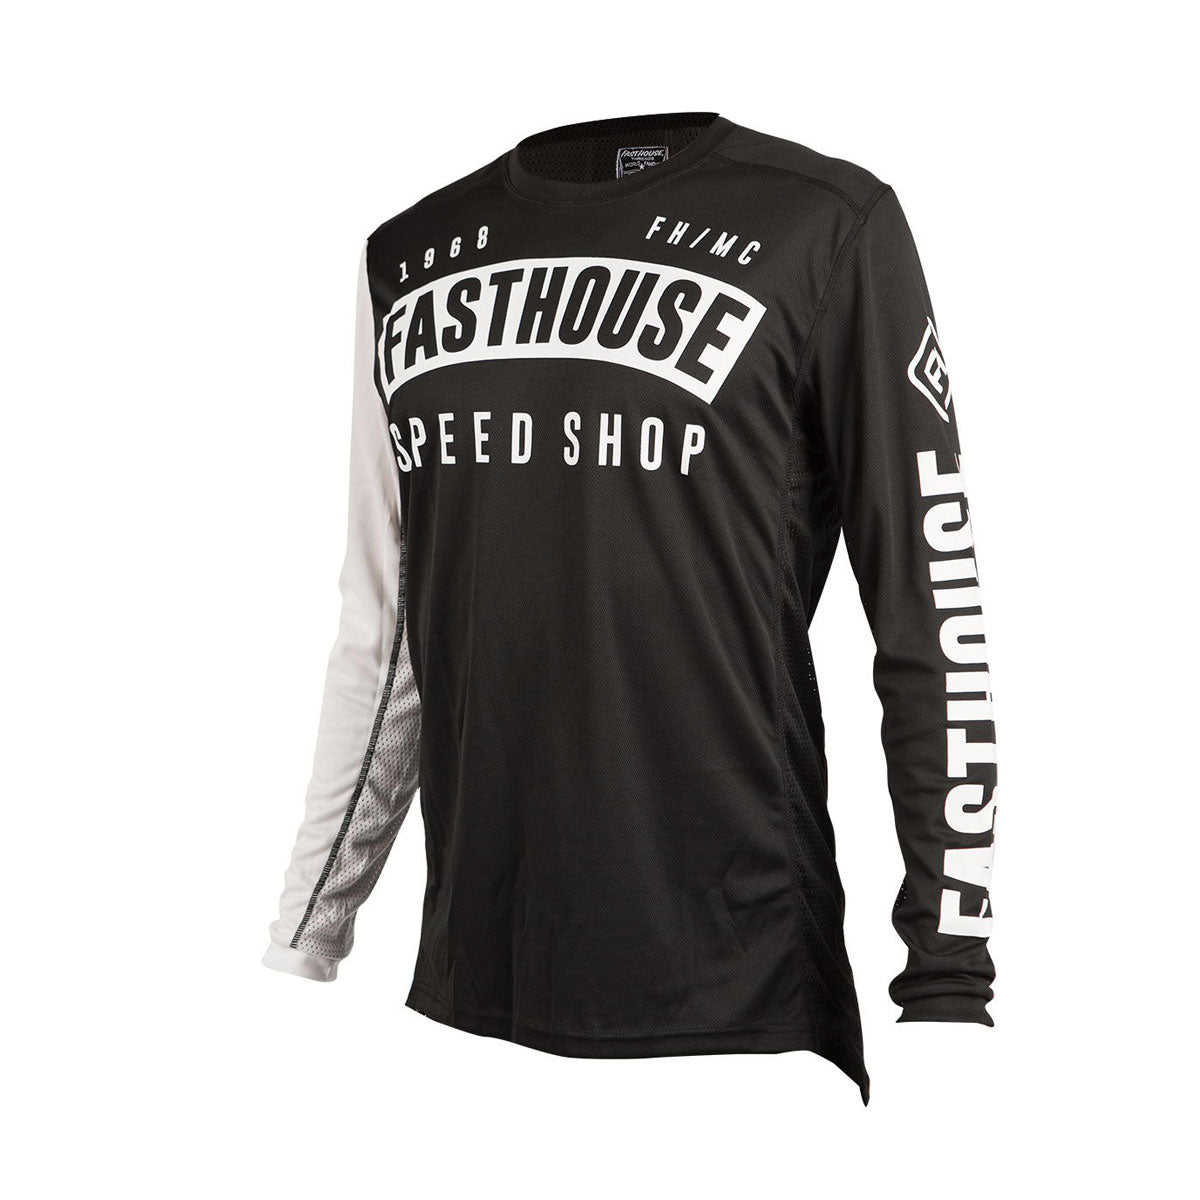 Fasthouse - Block L1 Youth Jersey - Black